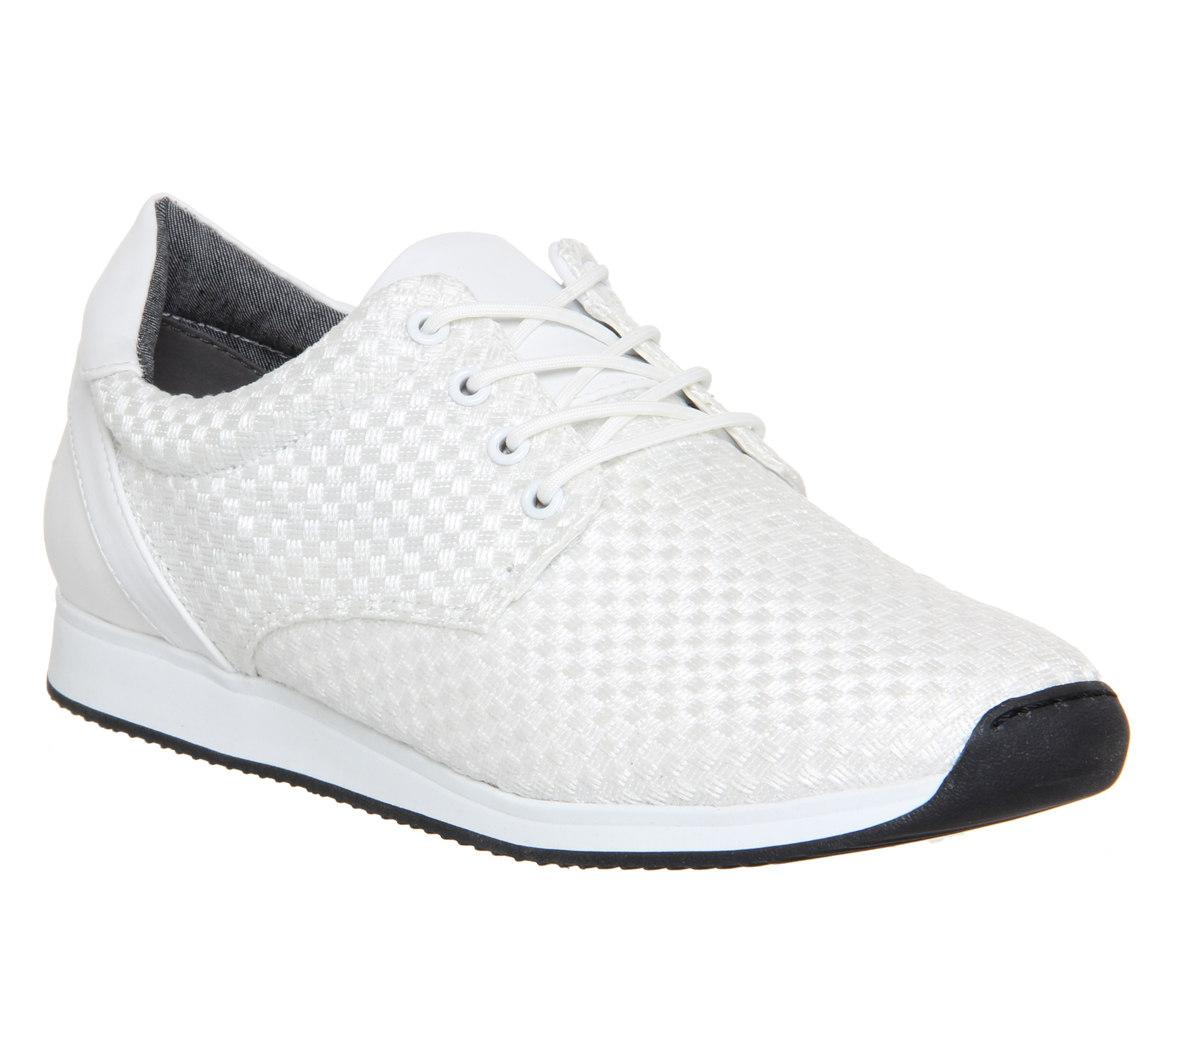 Vagabond Lace Kasai Sneaker in White - Lyst